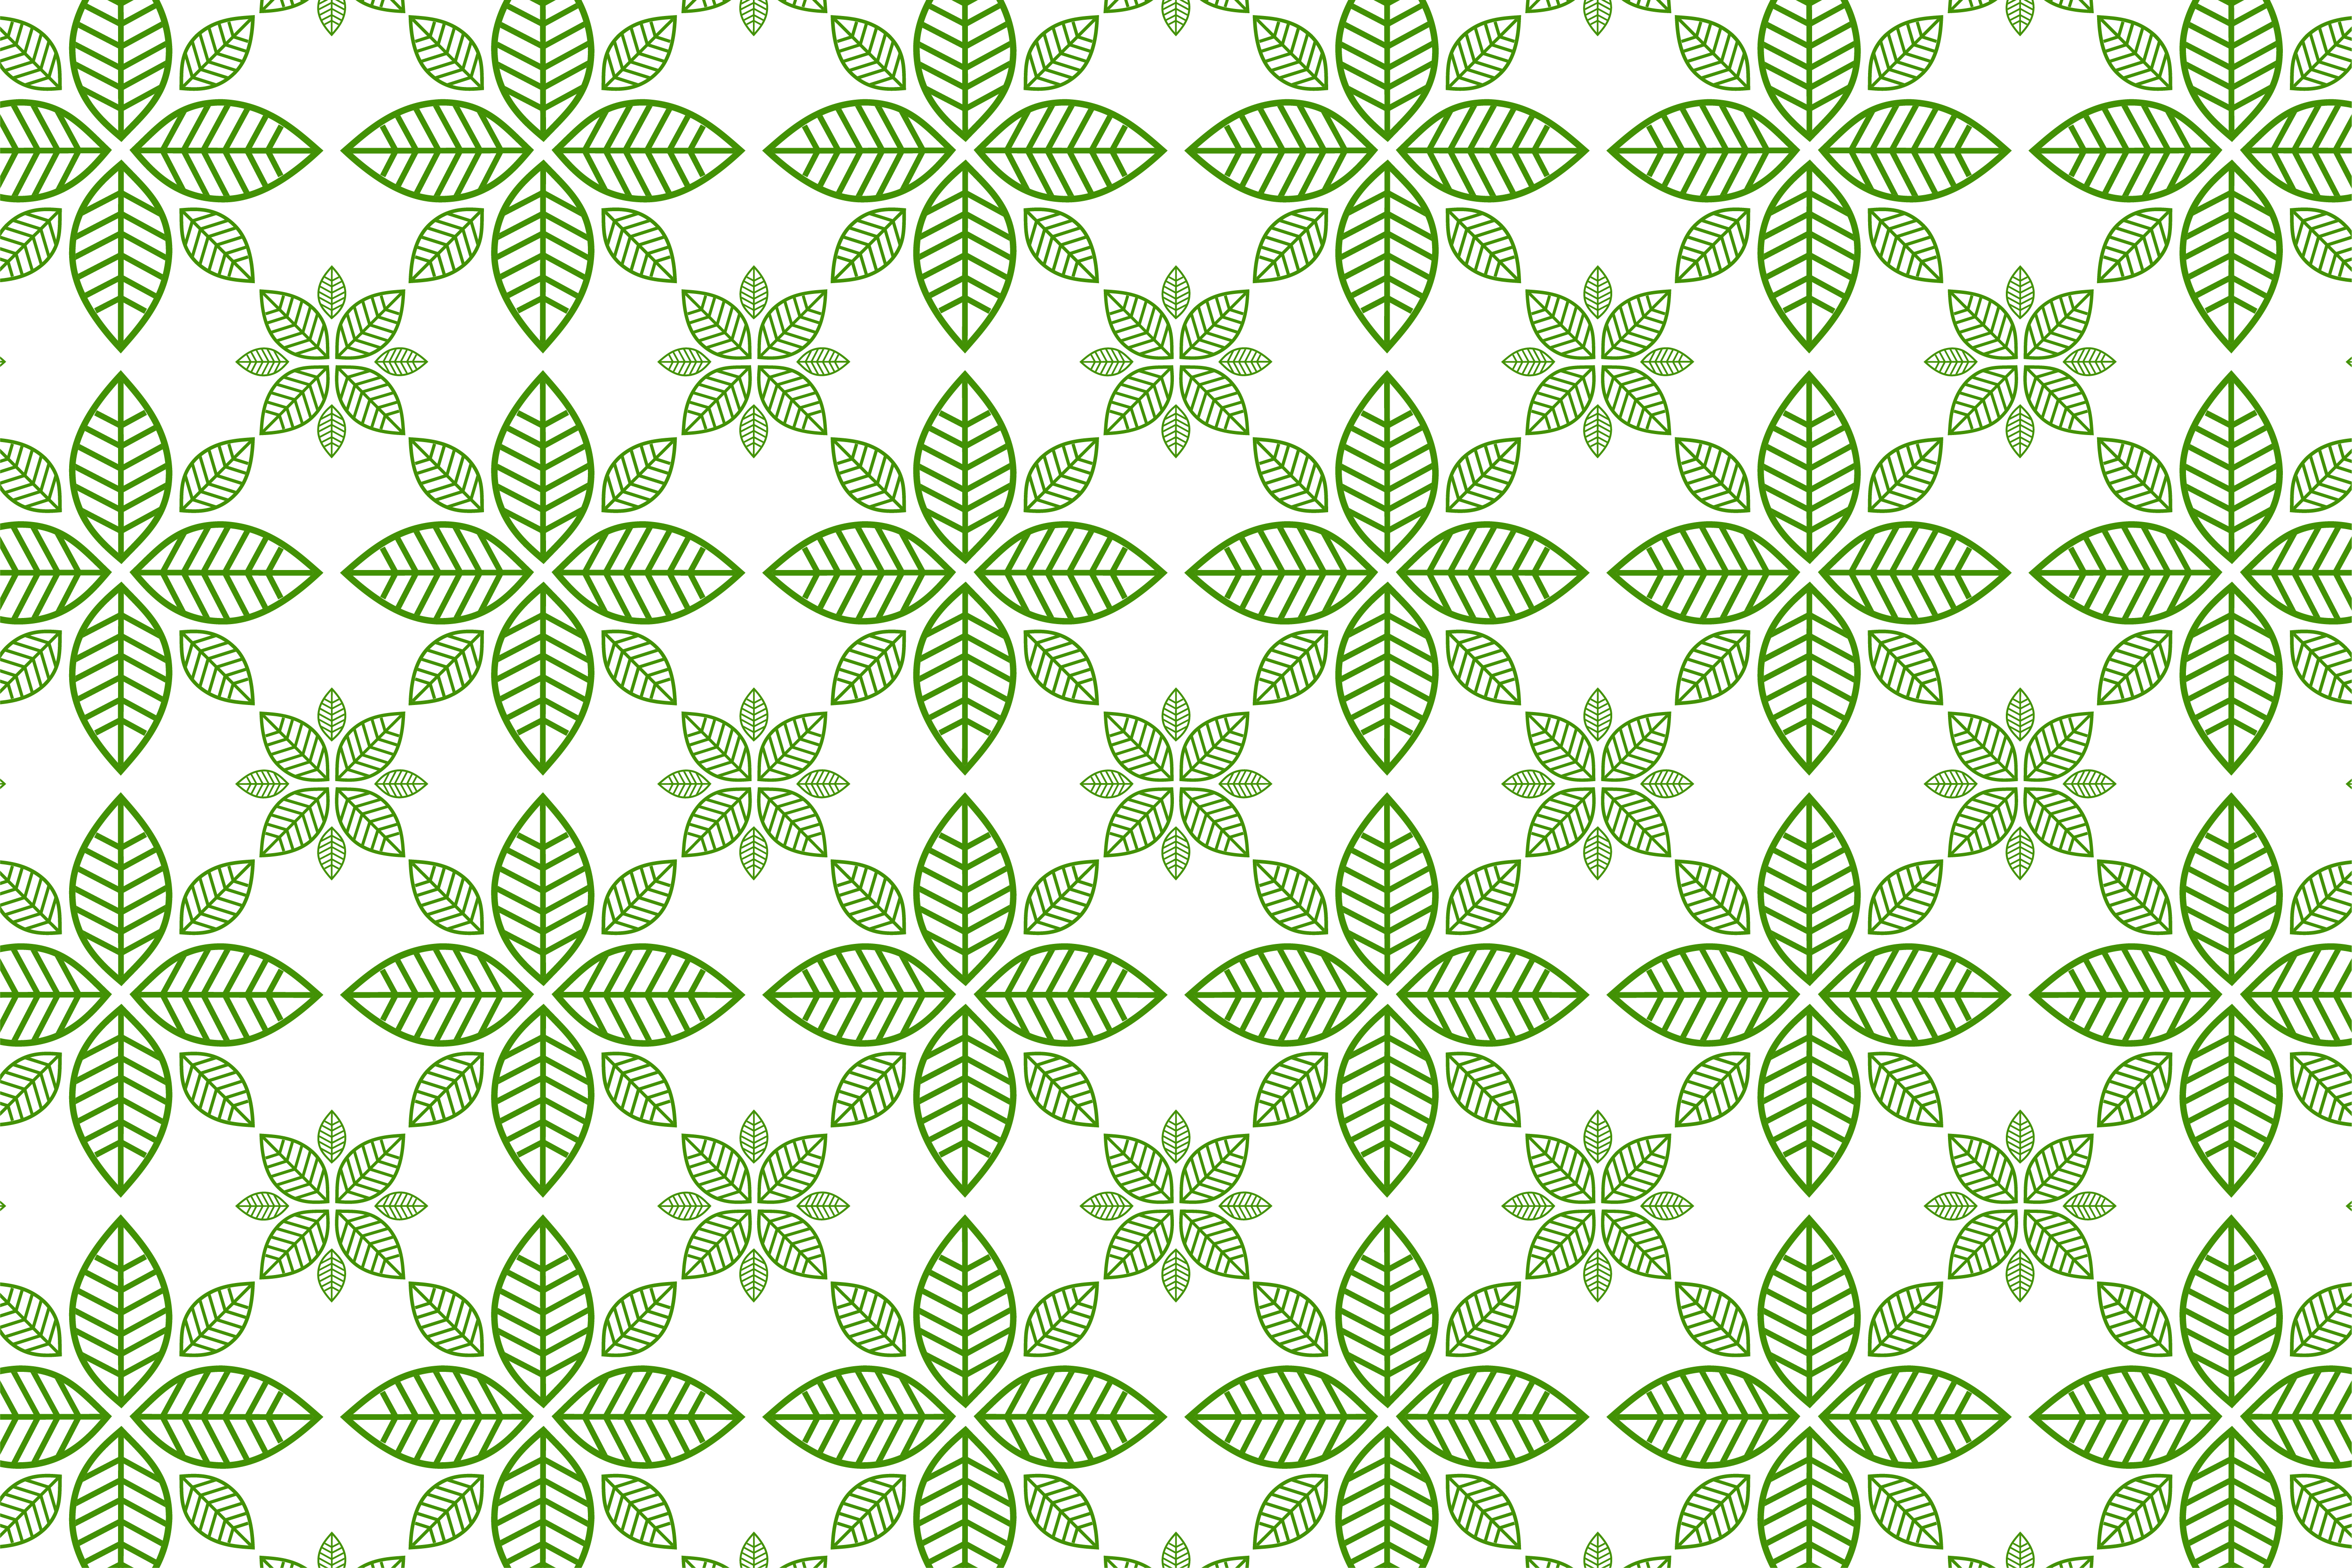 Download Free Leaf Pattern Green On White Background Graphic By Noory Shopper for Cricut Explore, Silhouette and other cutting machines.